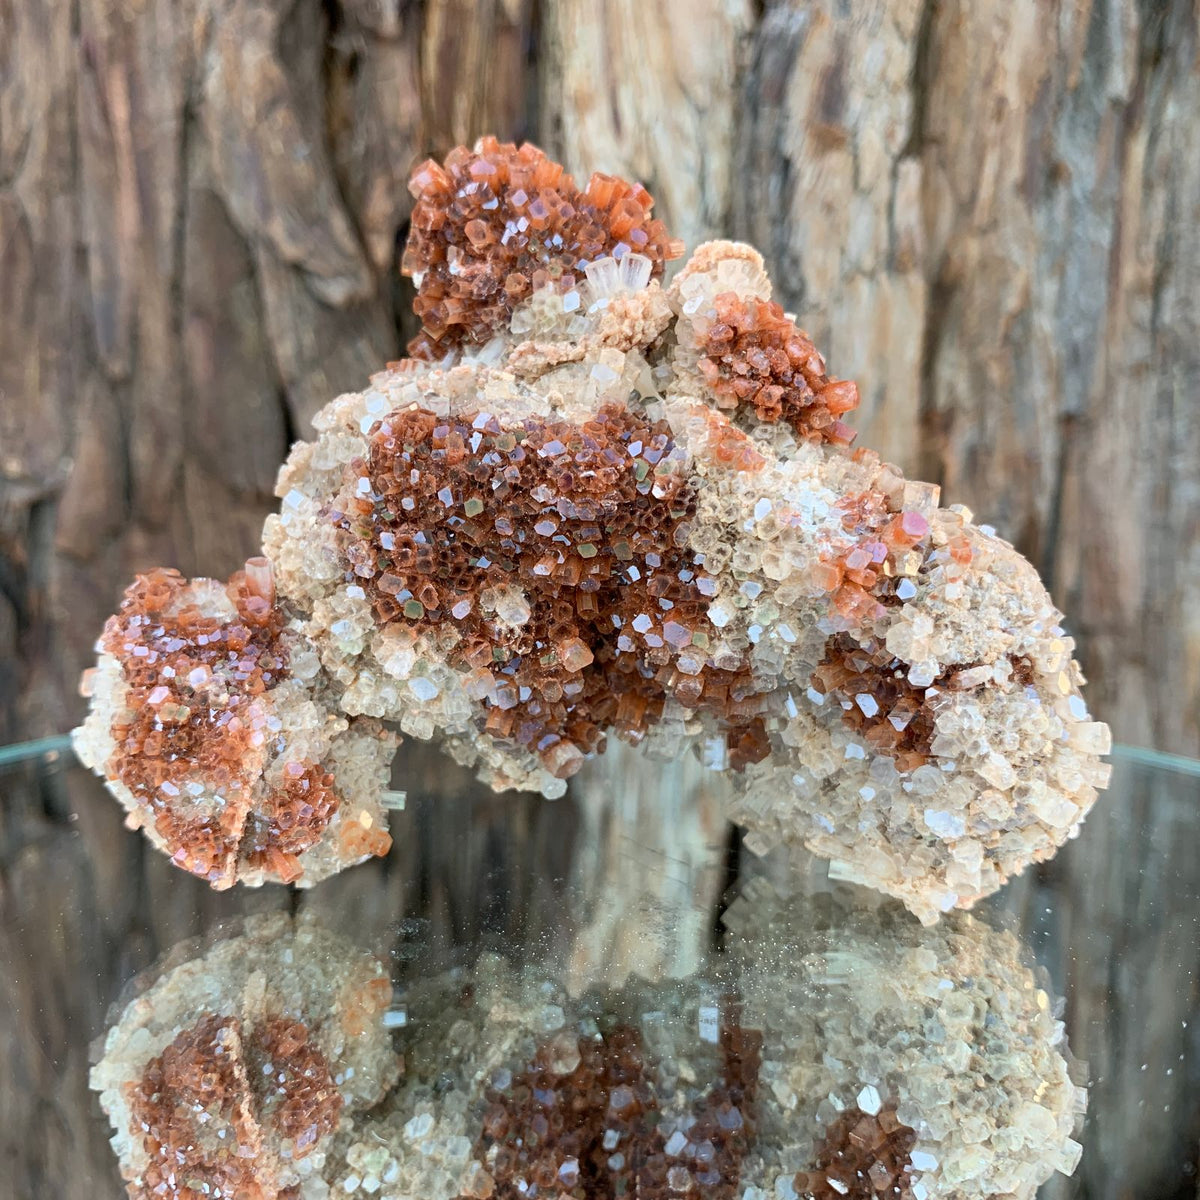 9cm 212g Aragonite from Morocco